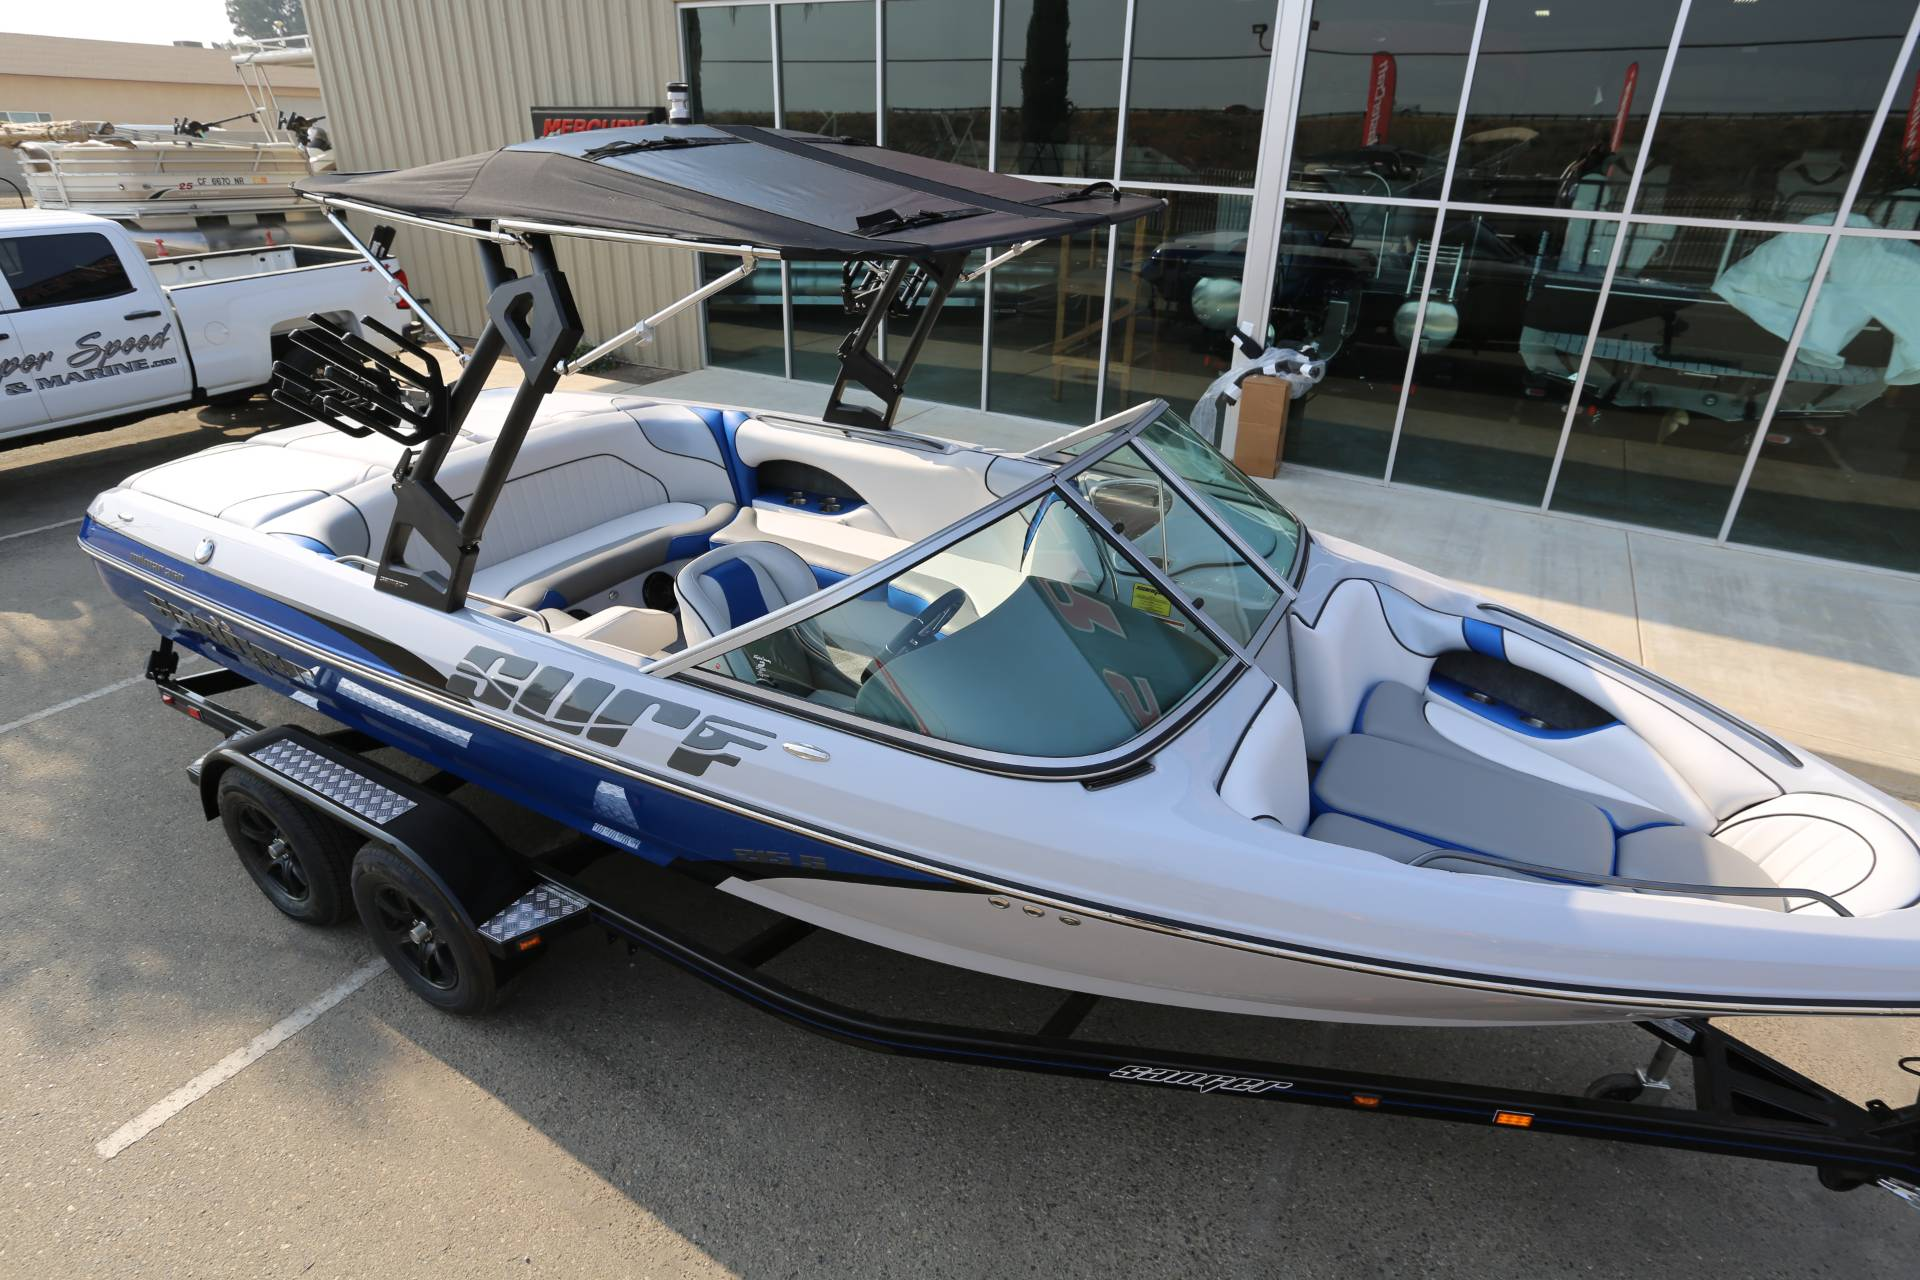 2021 Sanger Boats V215 S in Madera, California - Photo 22